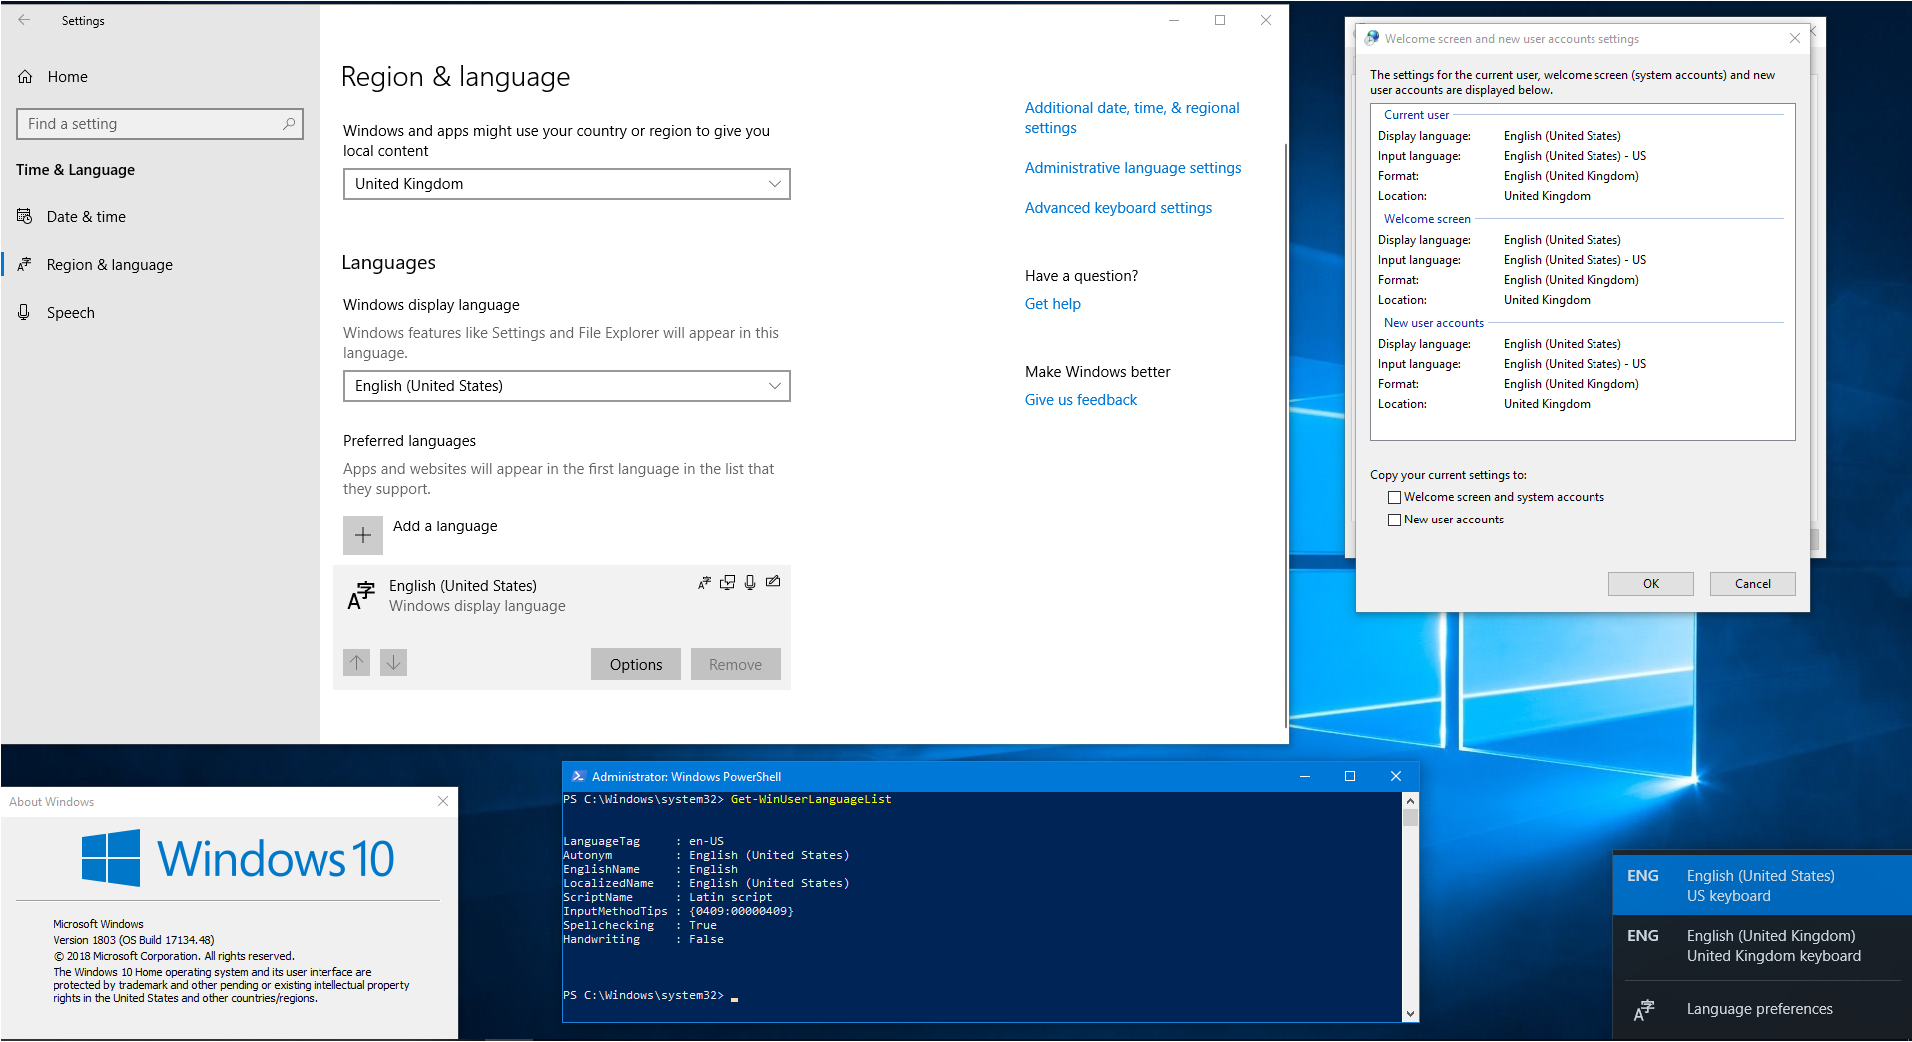 Can't remove a new keyboard layout in Windows 10 1803 - Microsoft